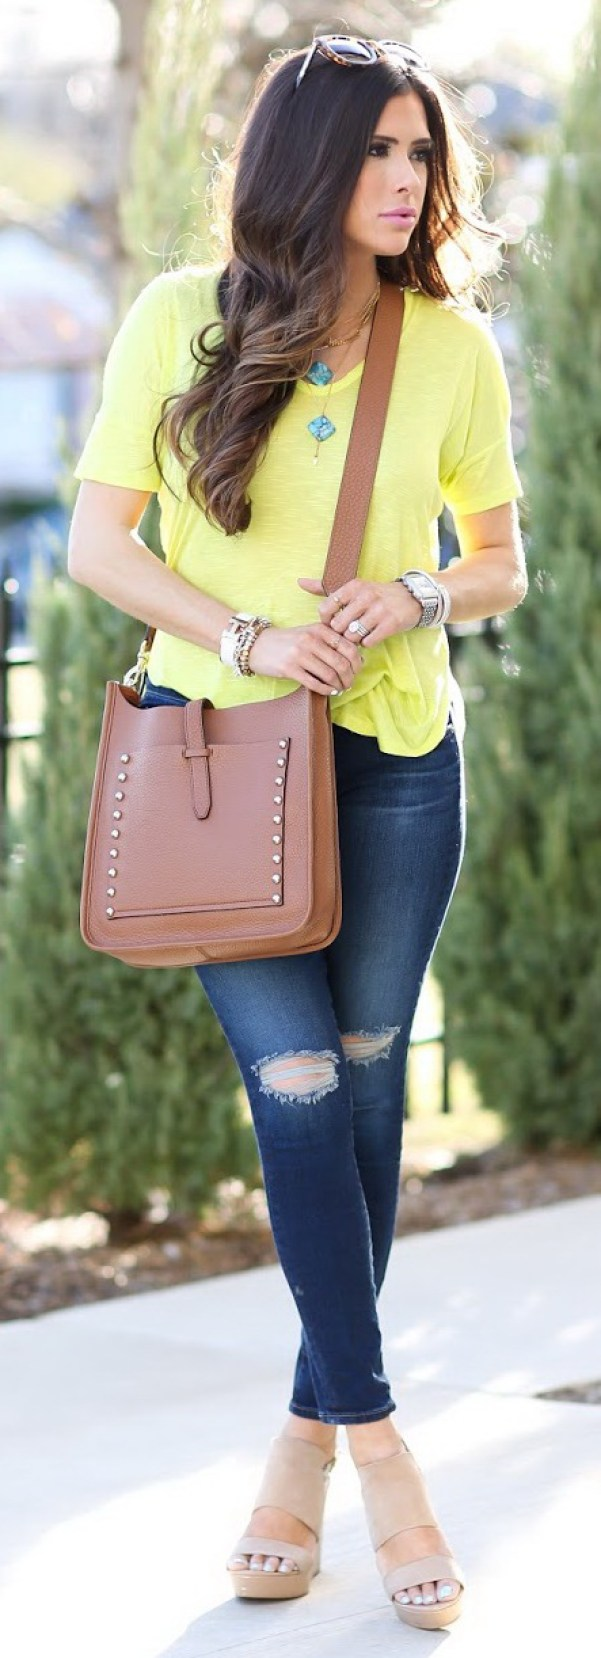 30 stylish and chic summer outfit ideas for your inspiration